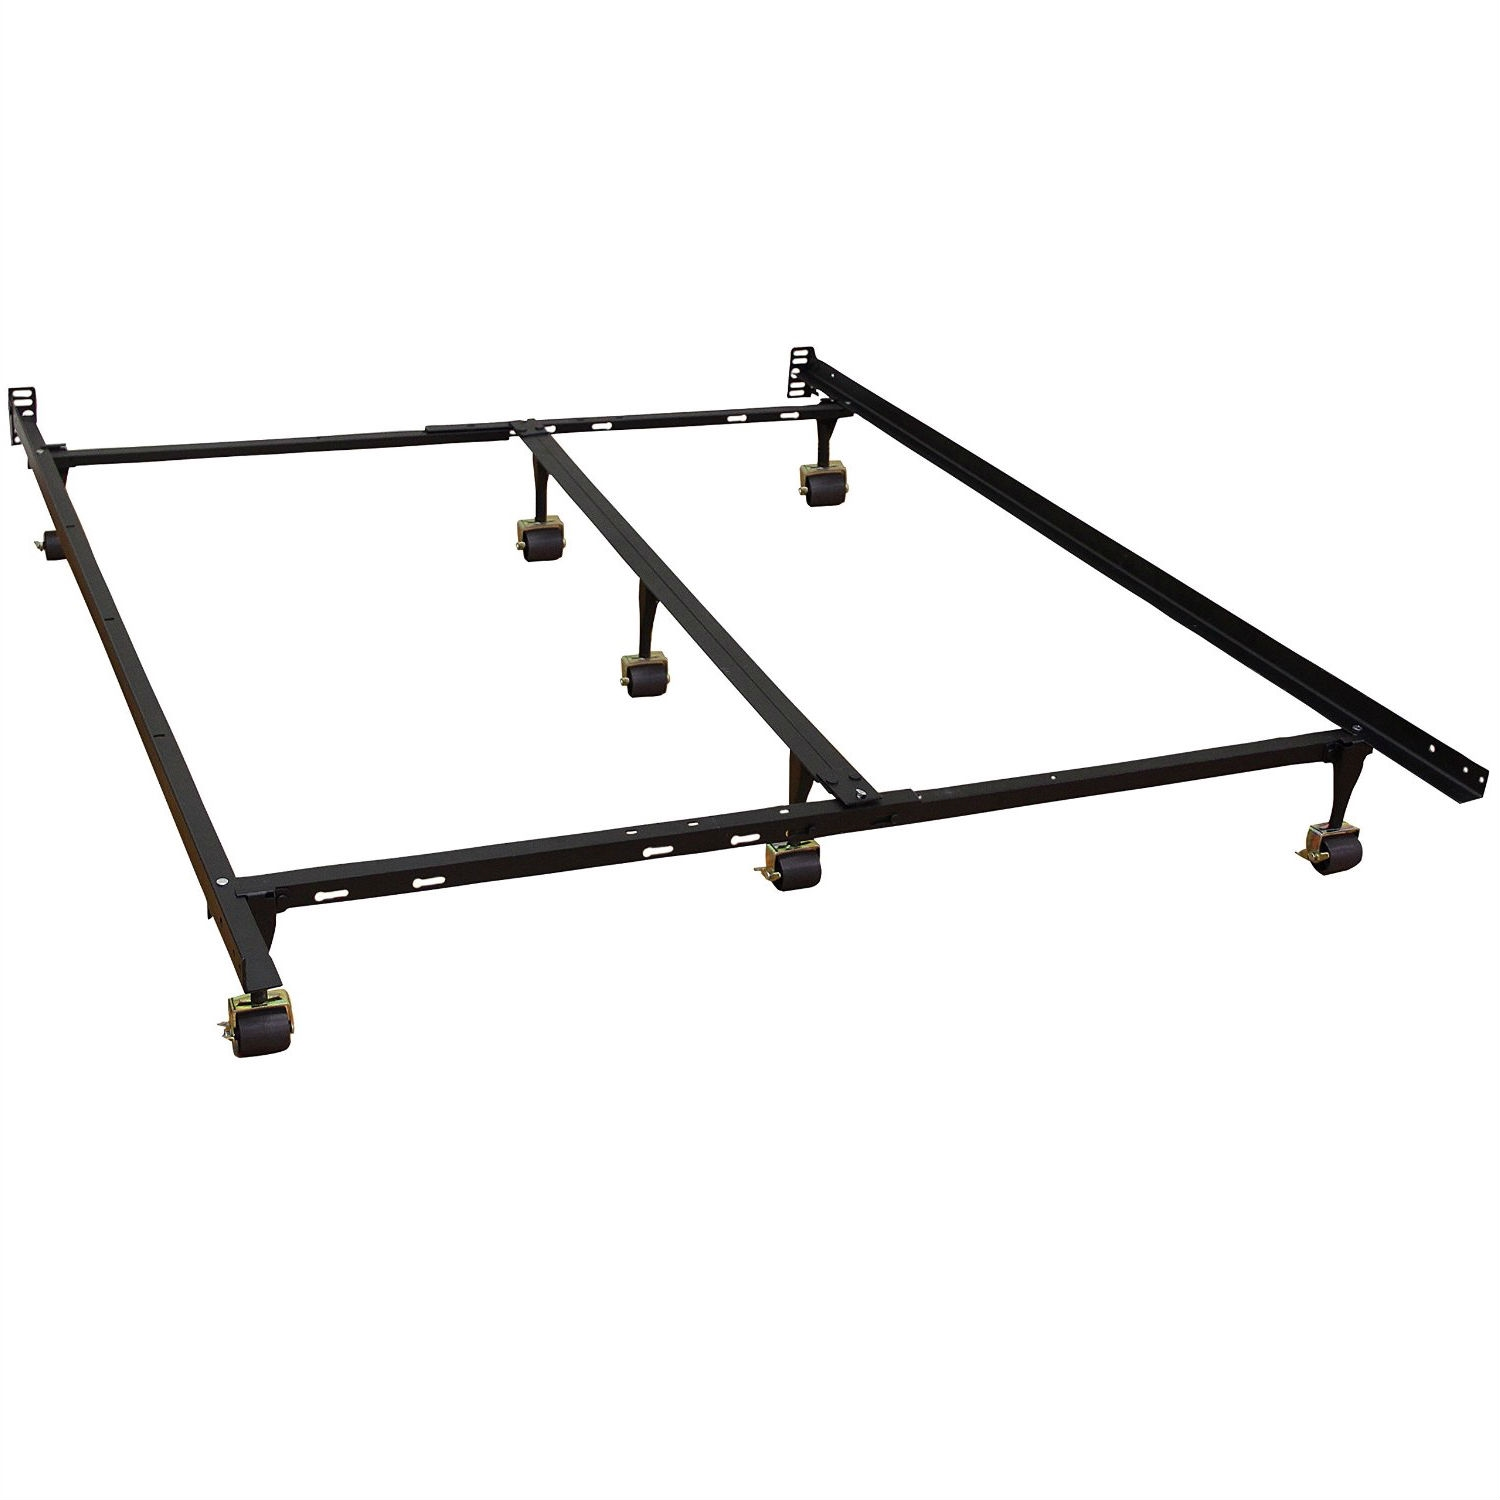 King size Metal Bed Frame with 7 Legs and Heavy Duty Locking Rug